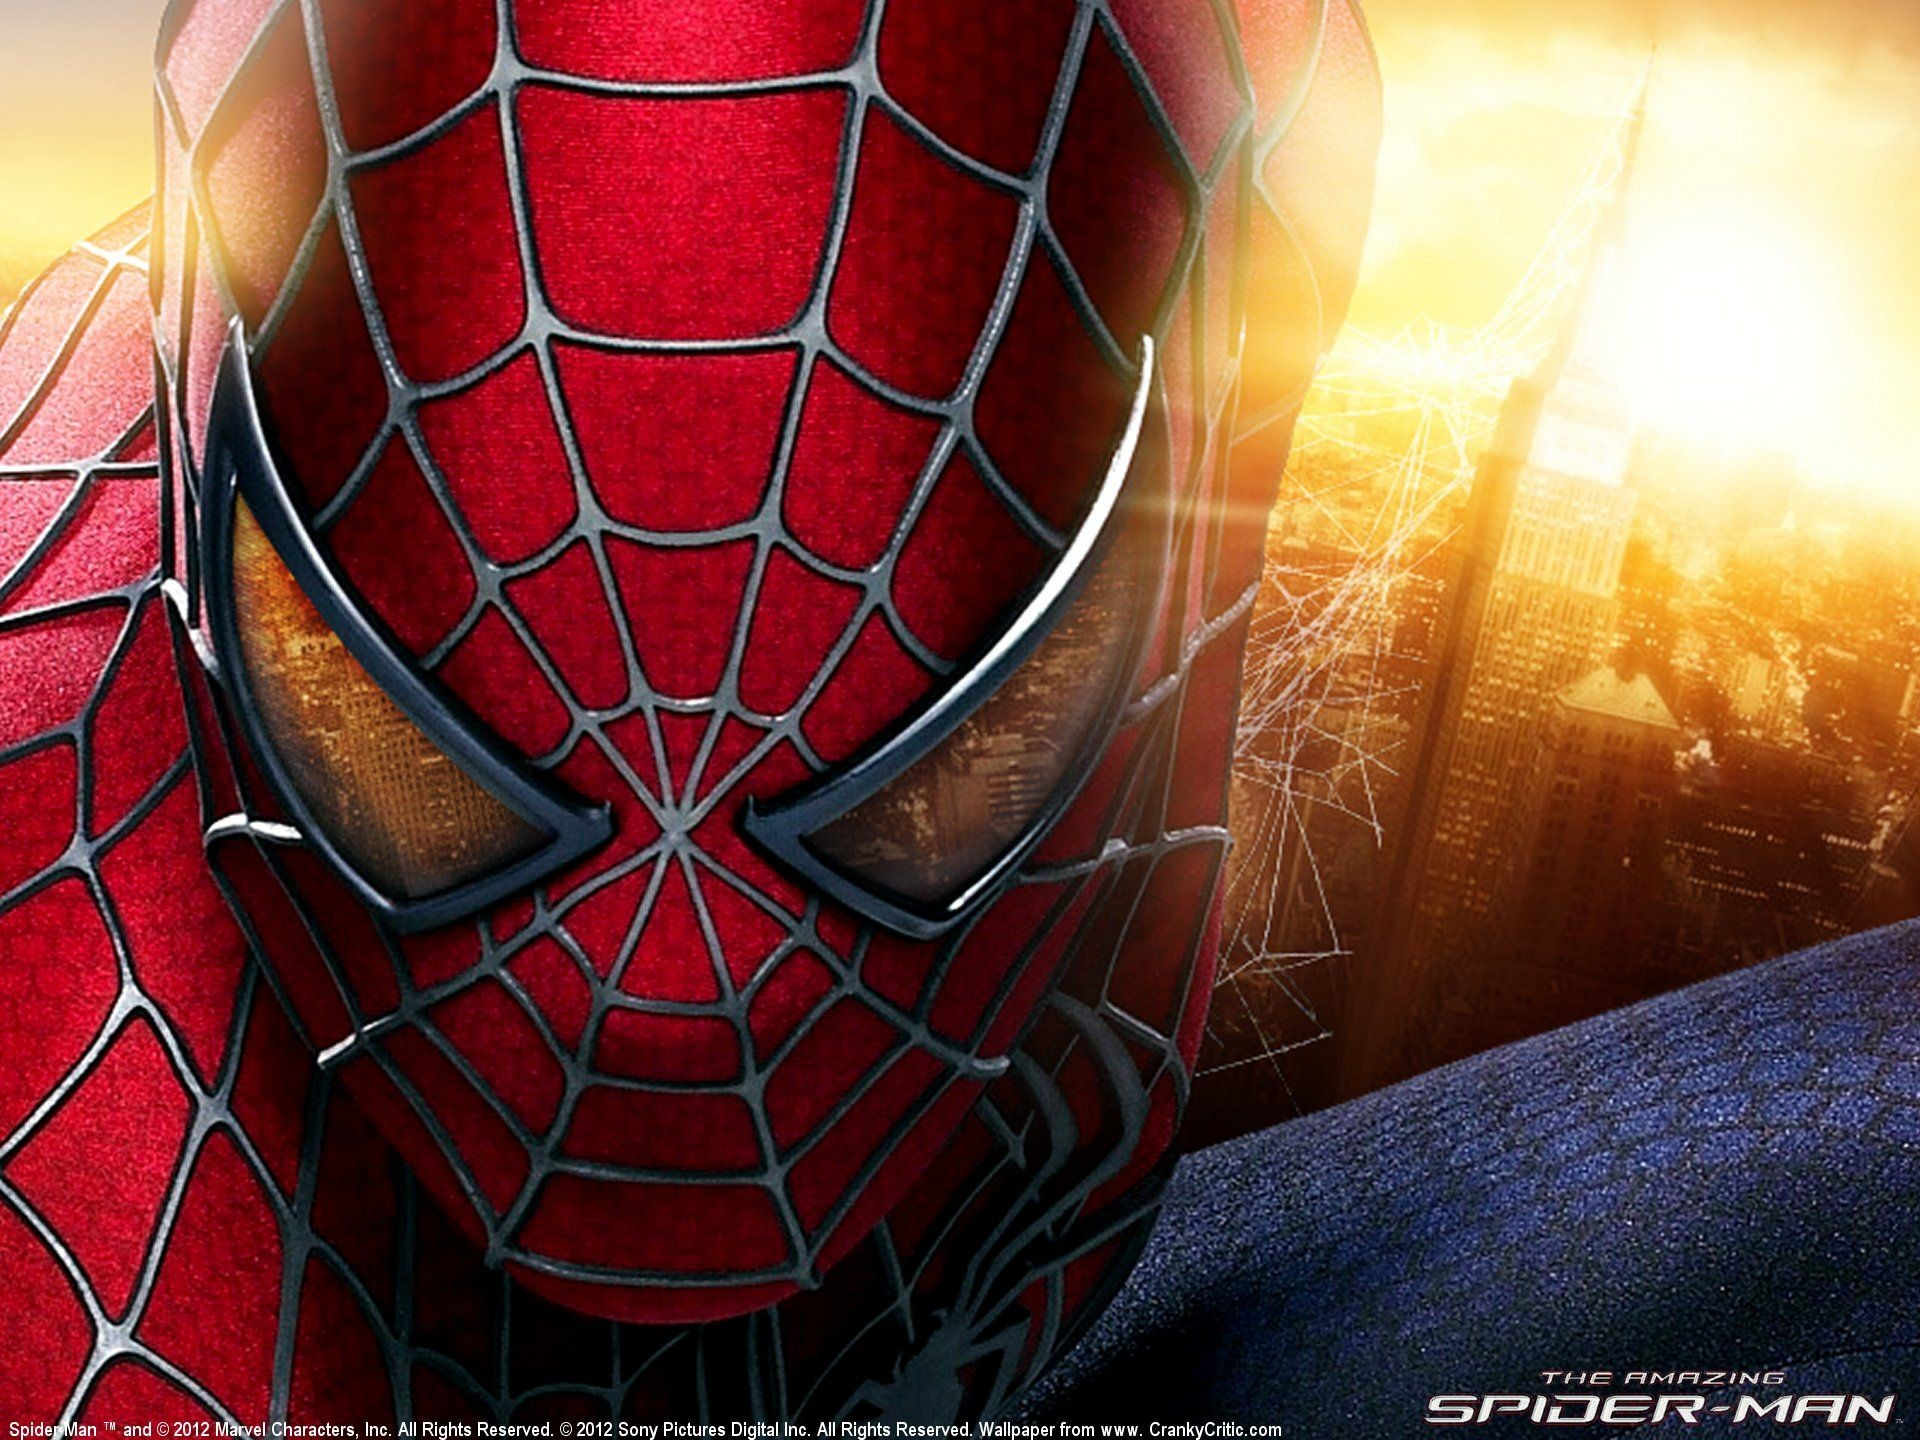 Spiderman Live Wallpaper Hd: Spiderman 4 Wallpaper ·① WallpaperTag